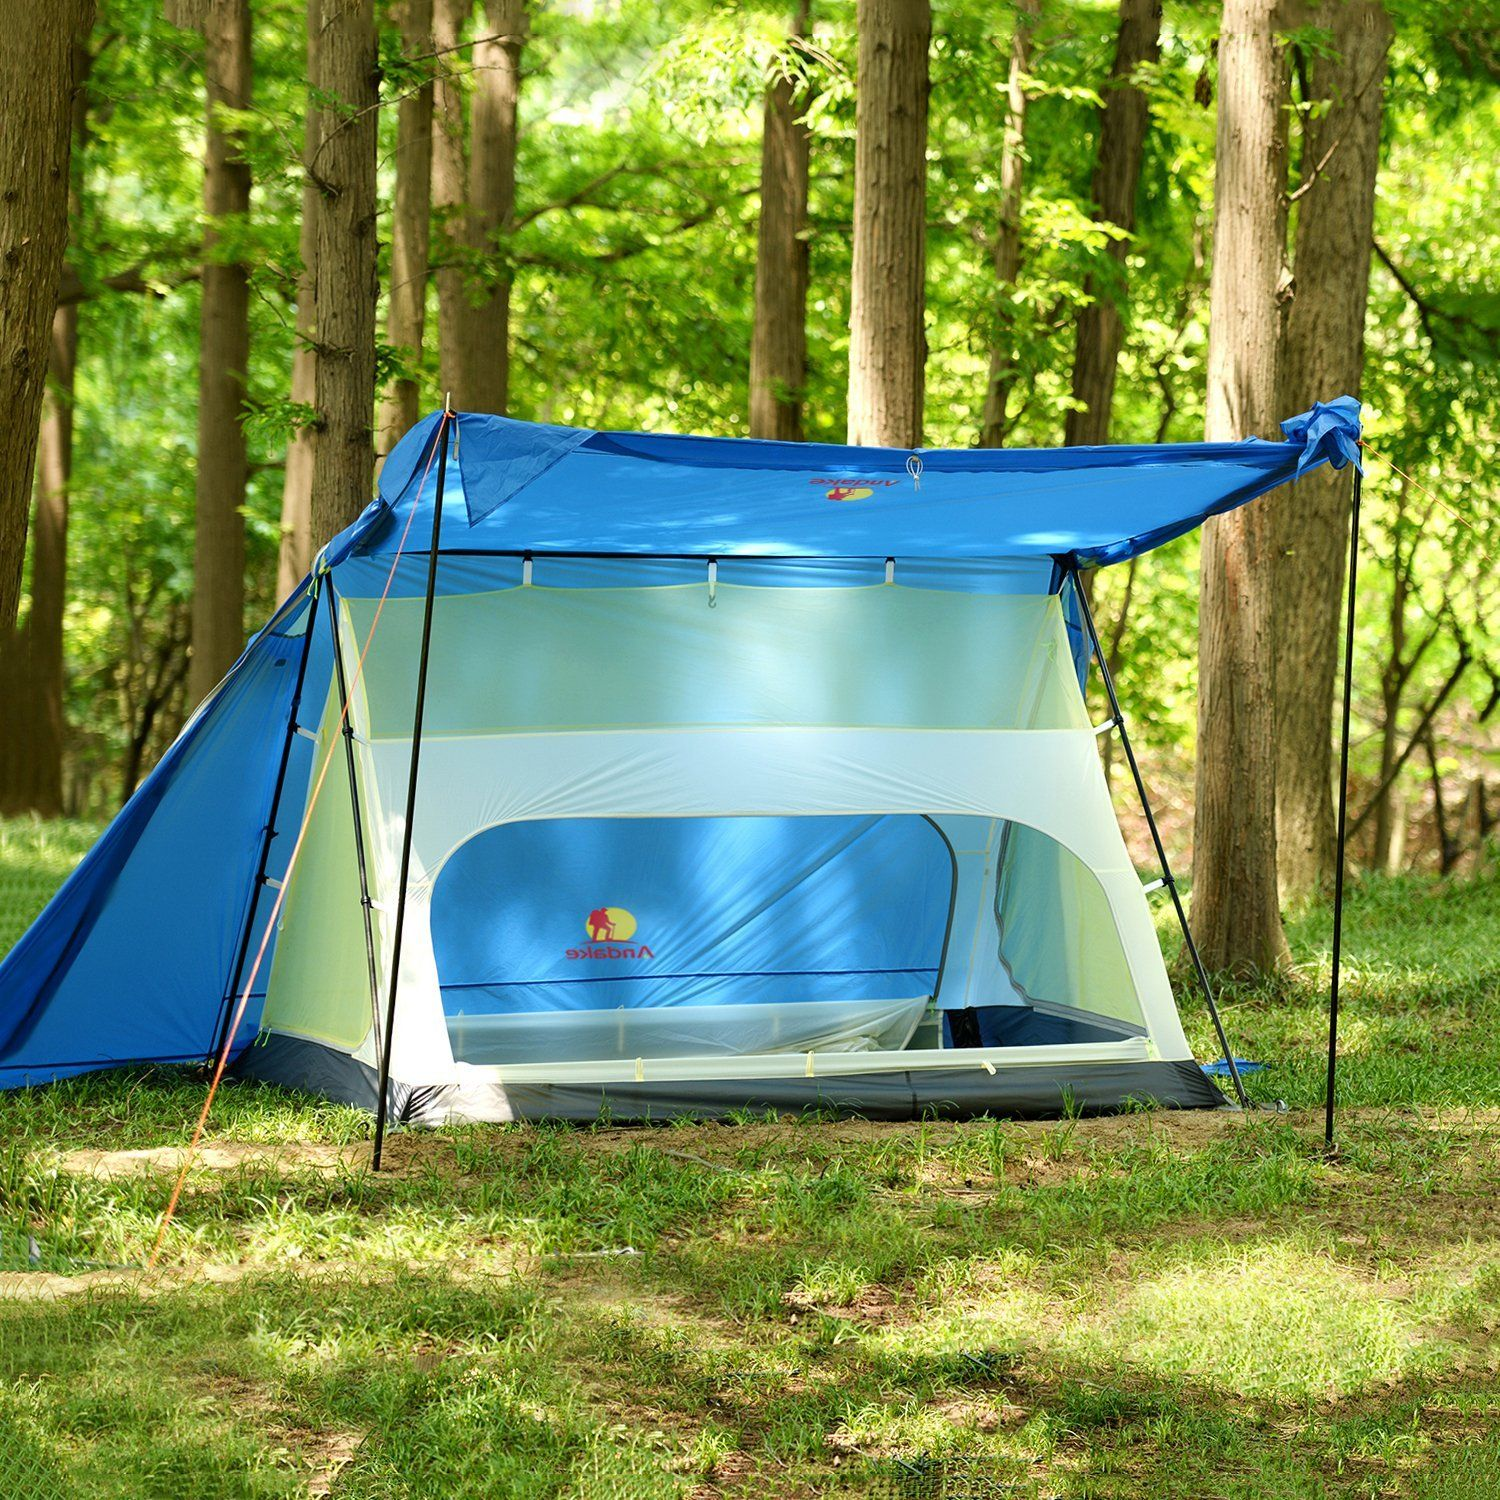 Tent Pop Up Tent Tents For Sale Camping Tents Coleman Tents Camping Gear Camping Equipment Camping Stove Camping Sto Cabin Tent Family Tent Camping Family Tent